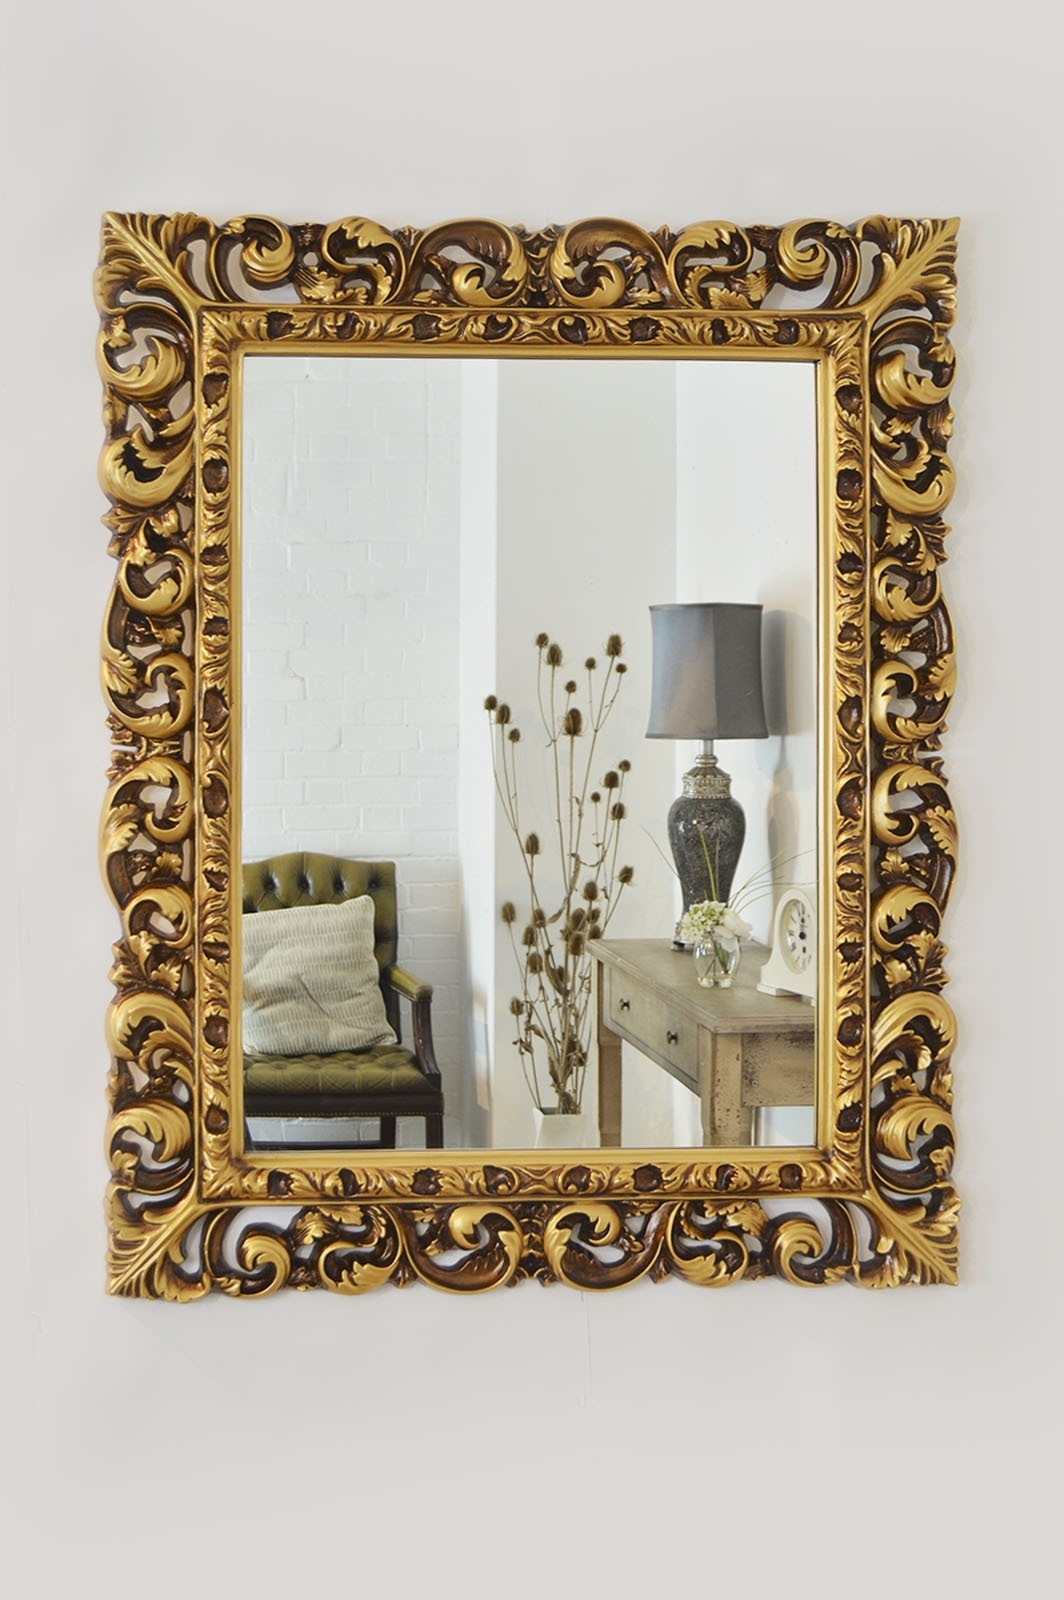 Large Antique Style Gold Carved Baroque Wall Mirror 3ft5 X 2ft8 Throughout Baroque Mirror Large (View 11 of 15)